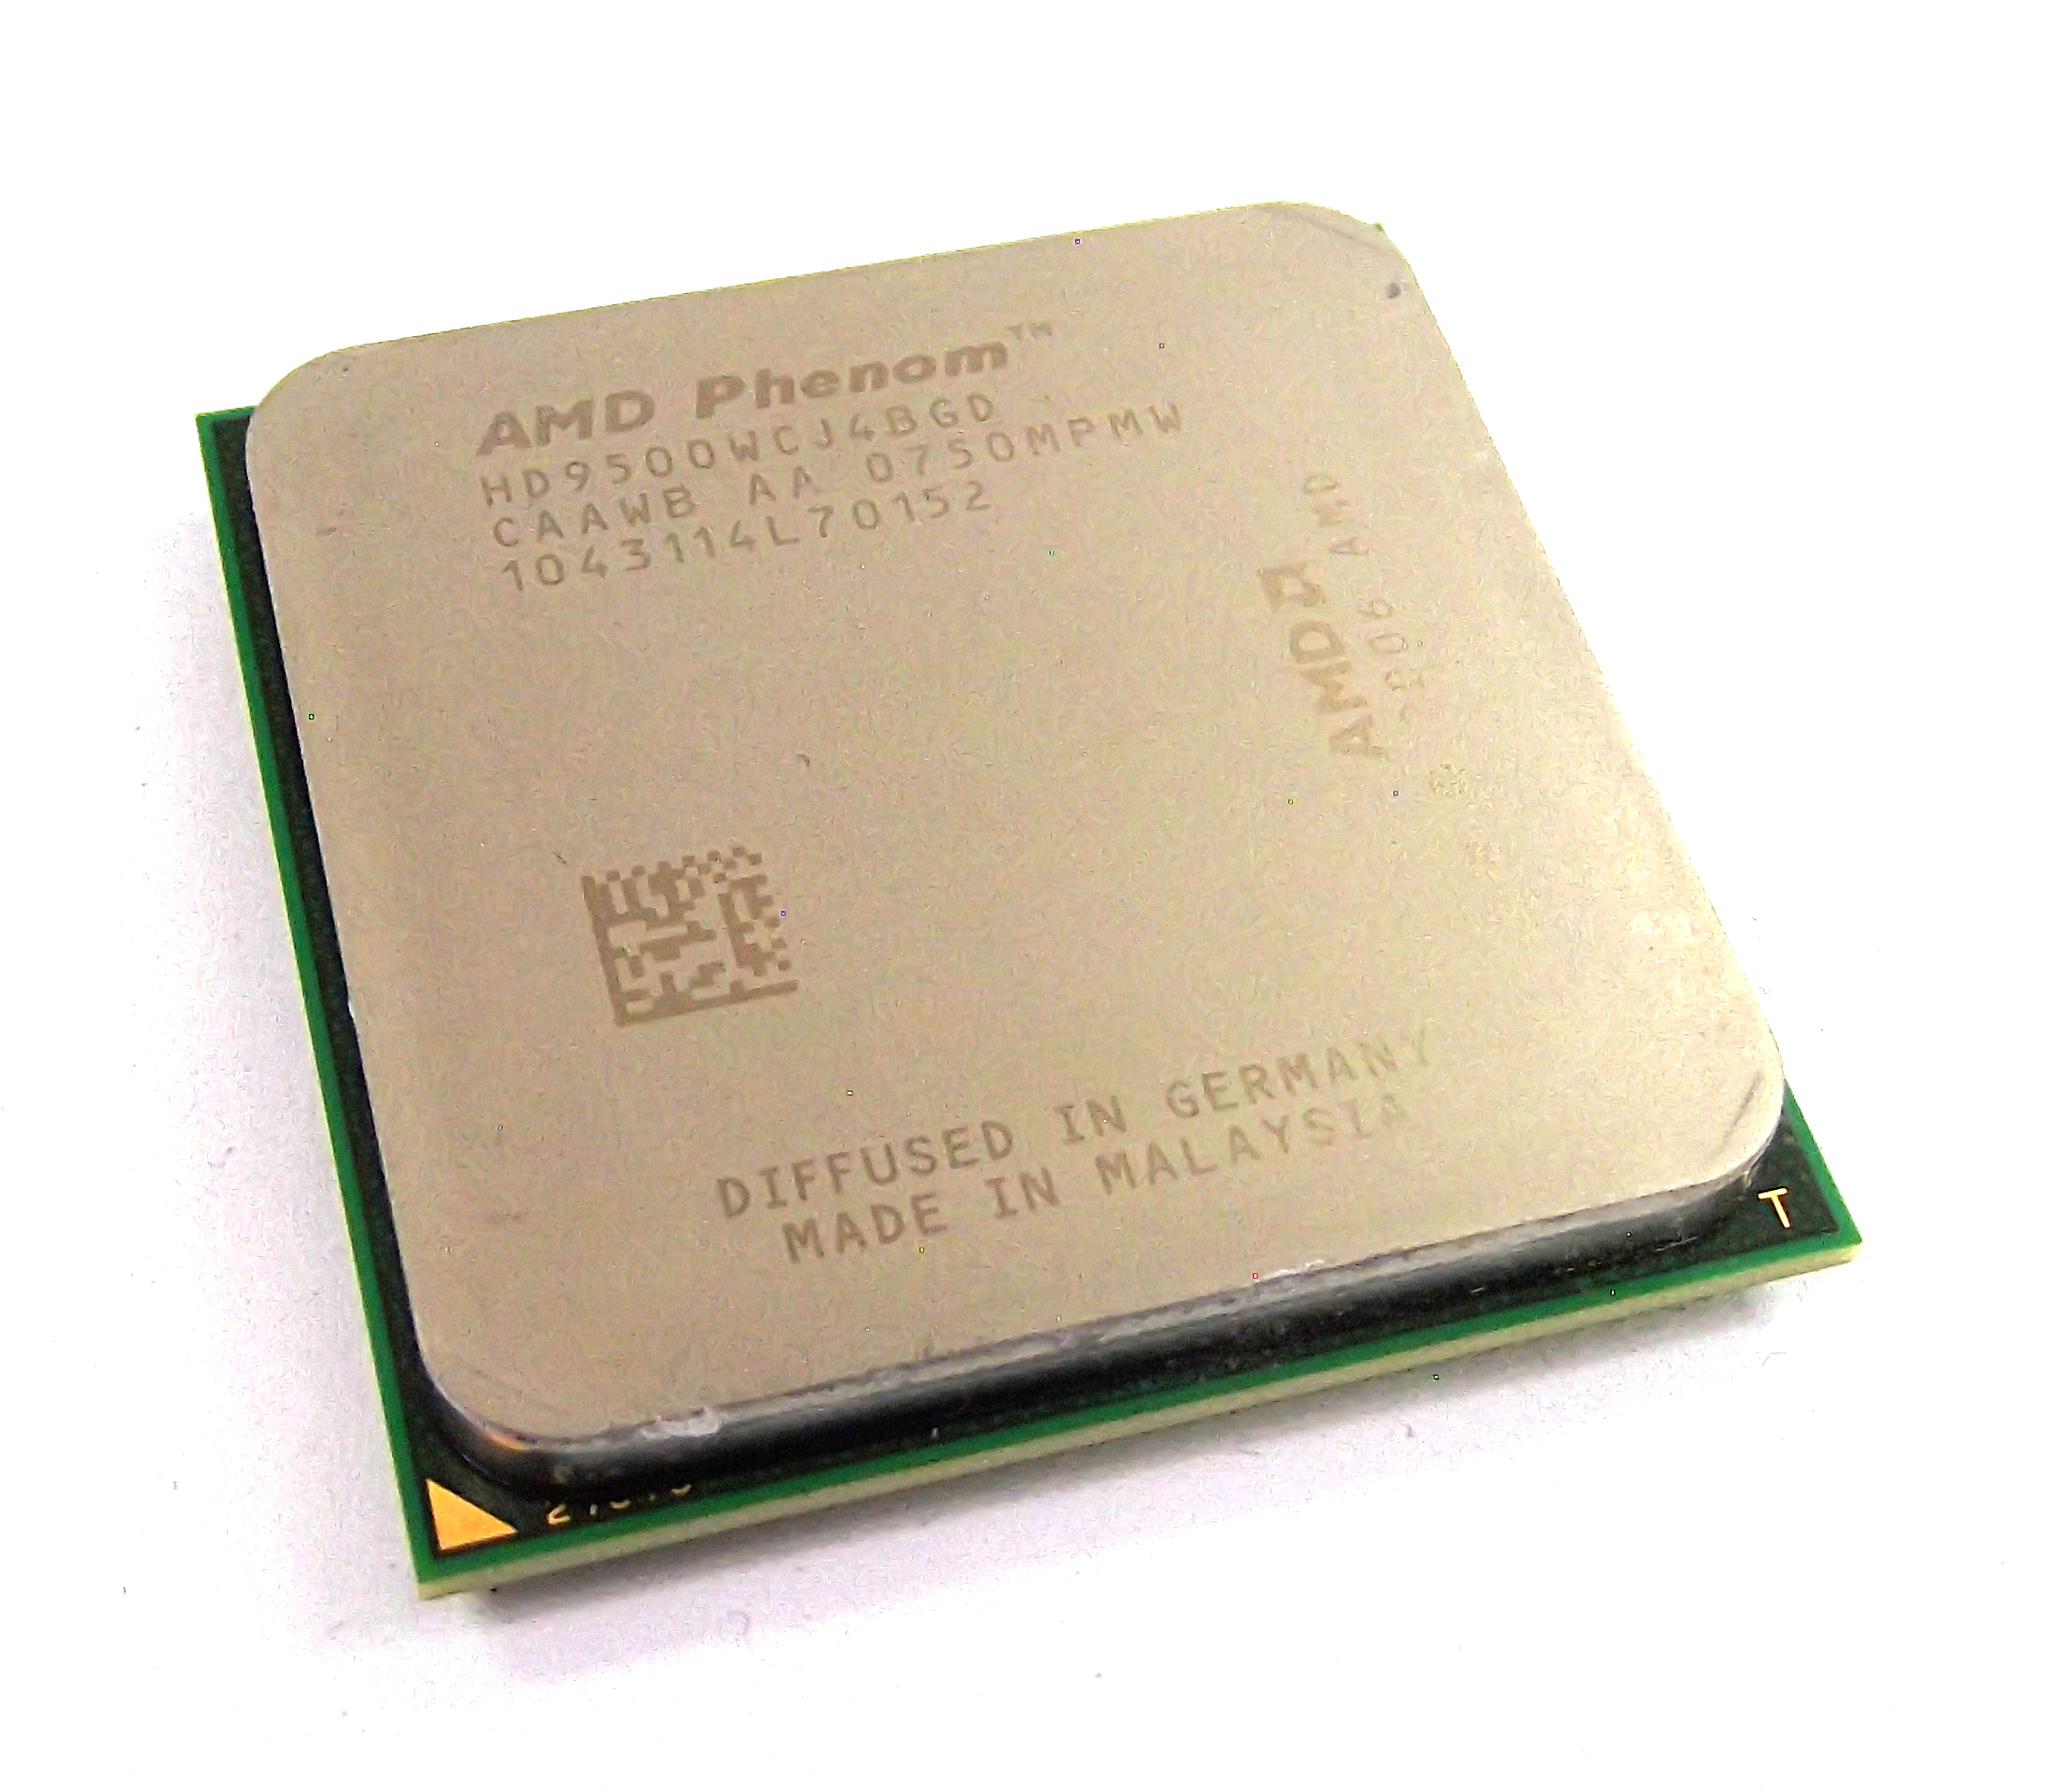 AMD Phenom X4 9500 HD9500WCJ4BGD 2.2 Ghz Socket AM2/AM2+ Processor